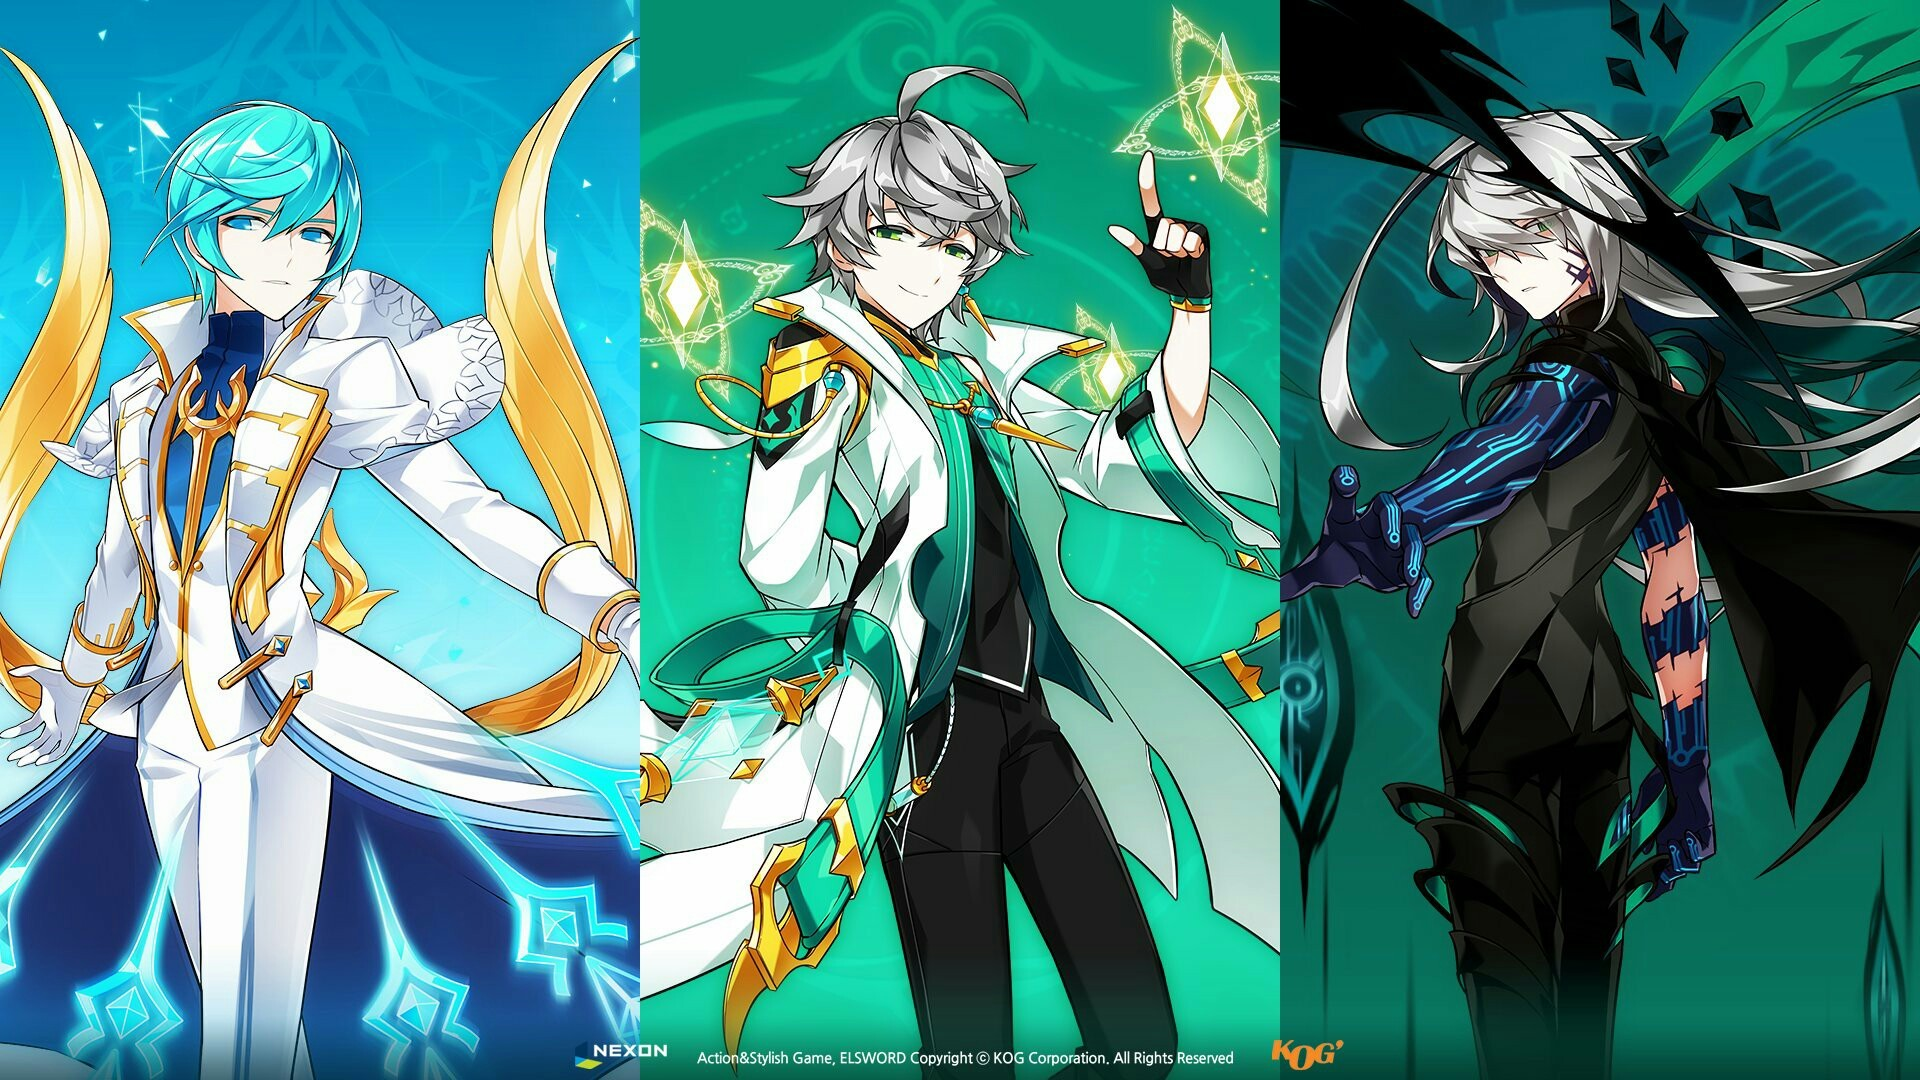 1920x1080 Elsword - Ain trancendence wallpaper